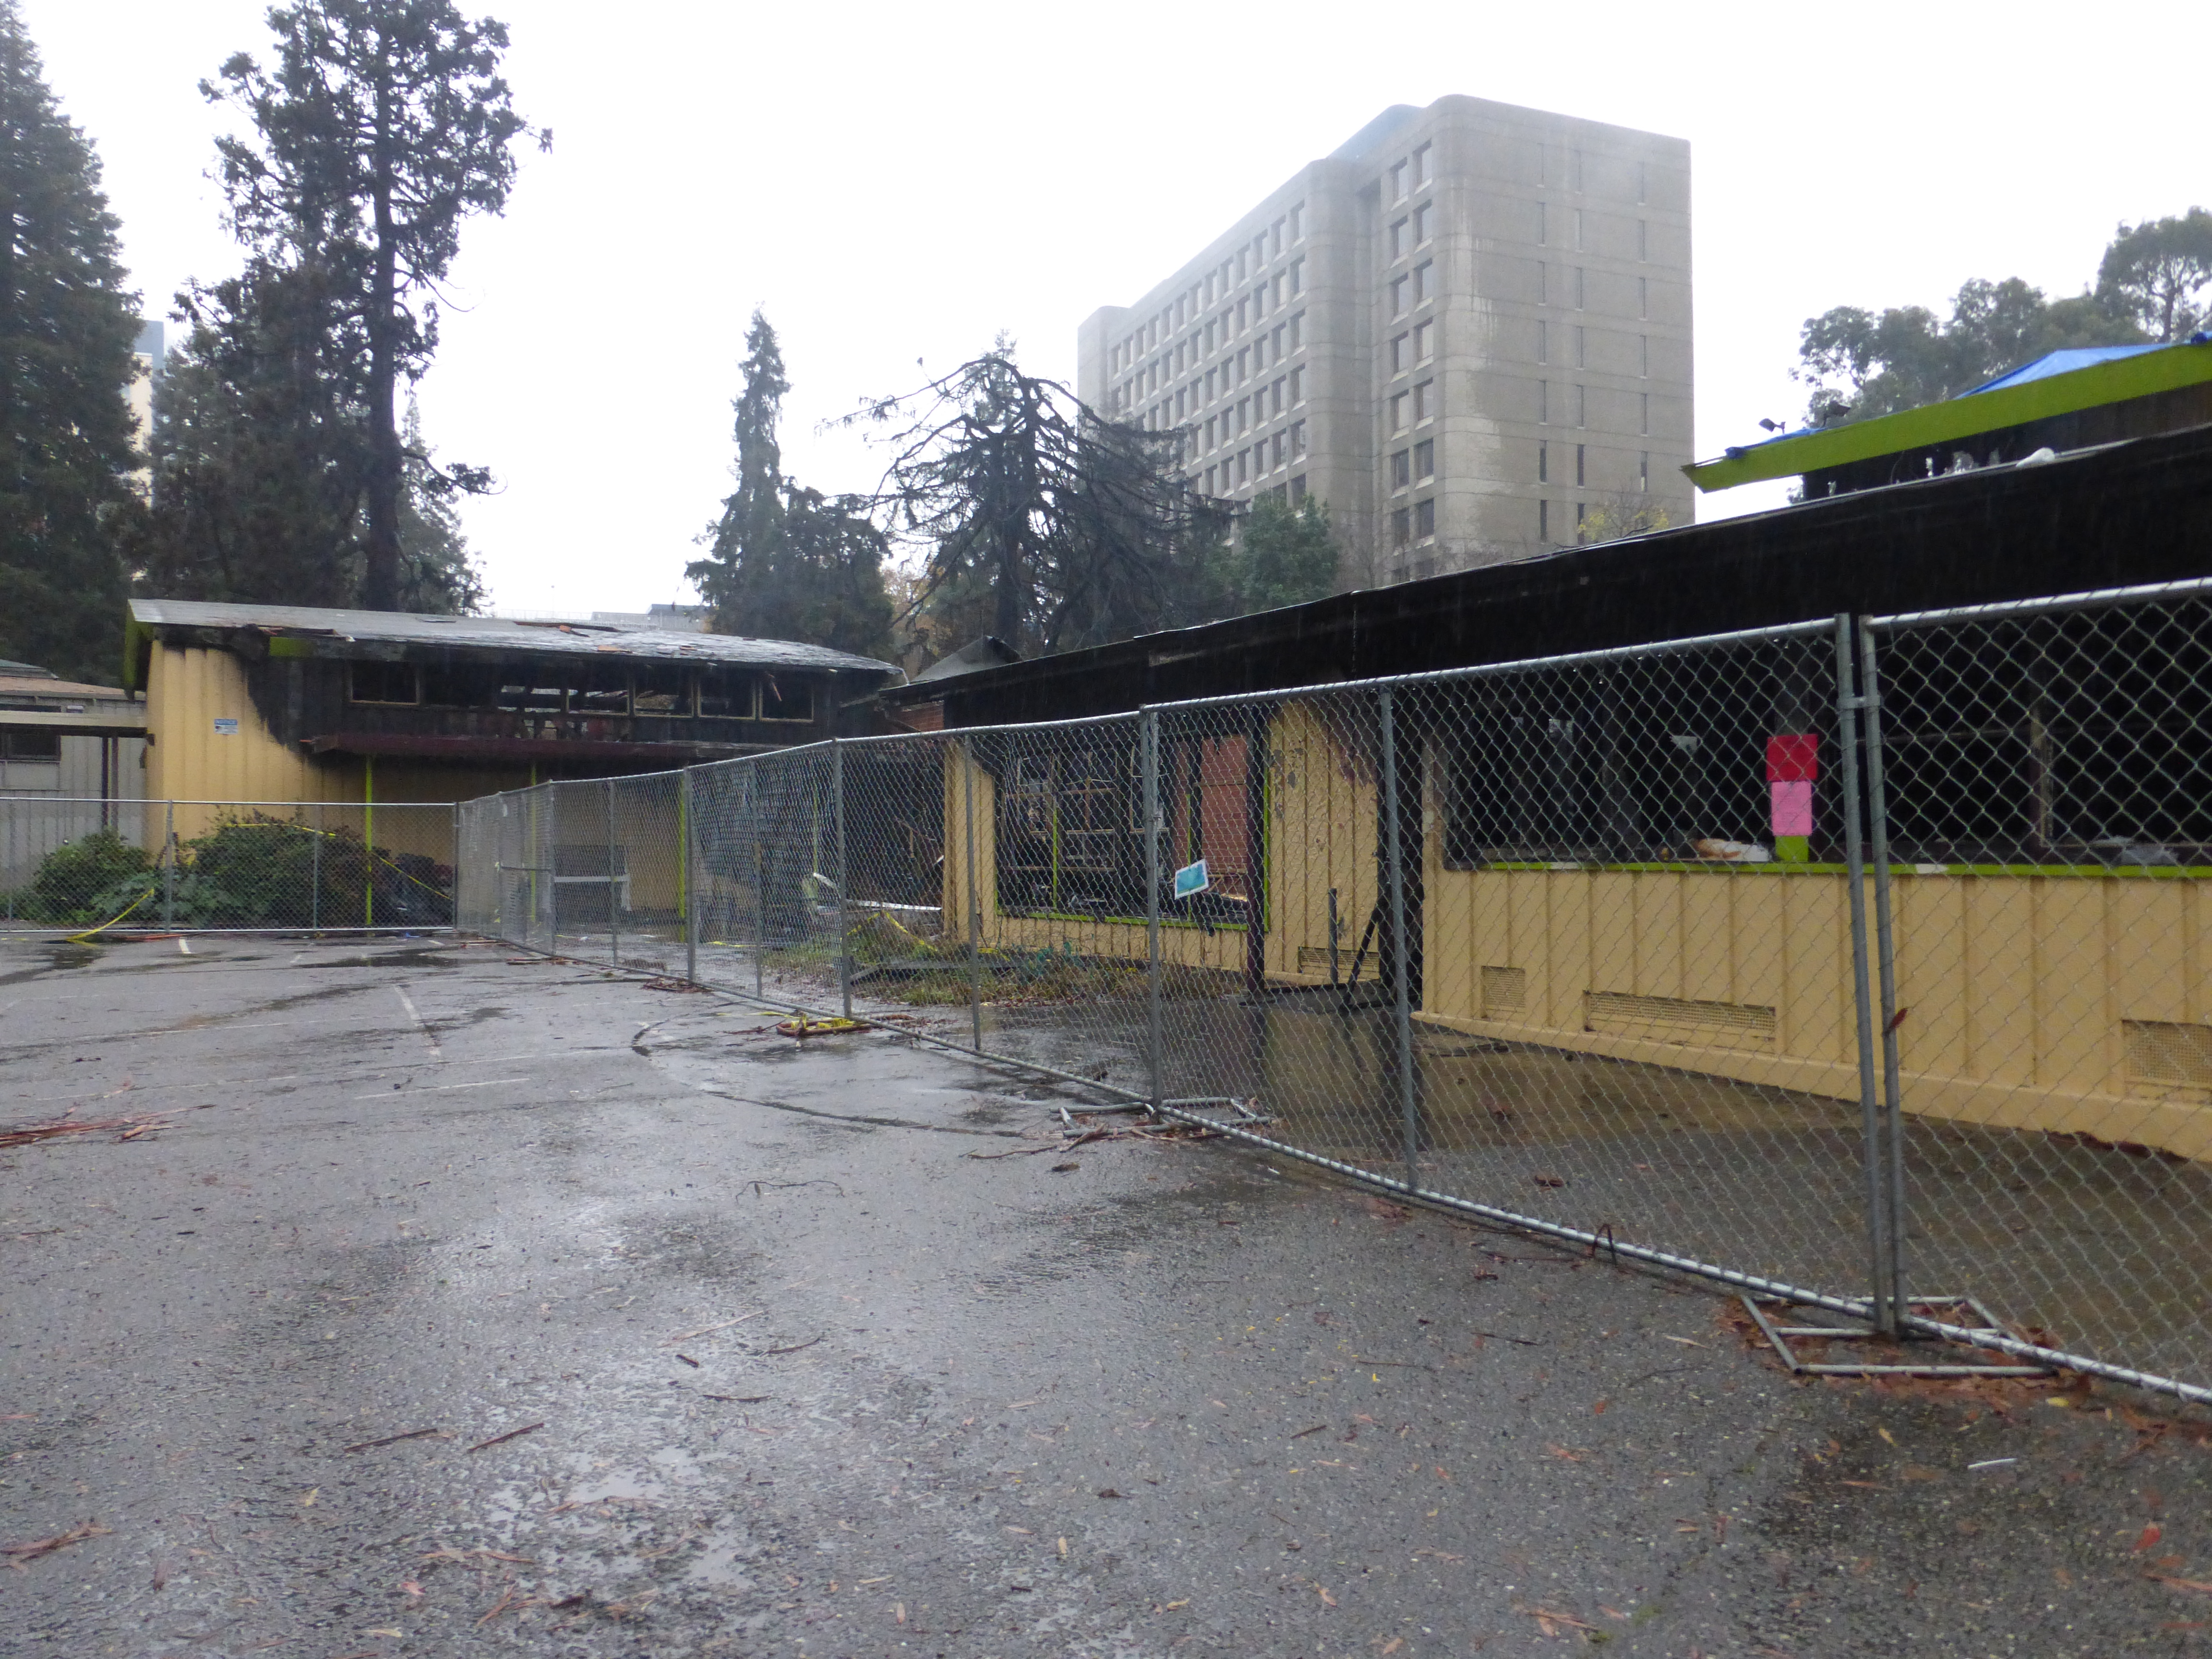 Mosswood Recreation Center was gutted by fire on November 26, 2016